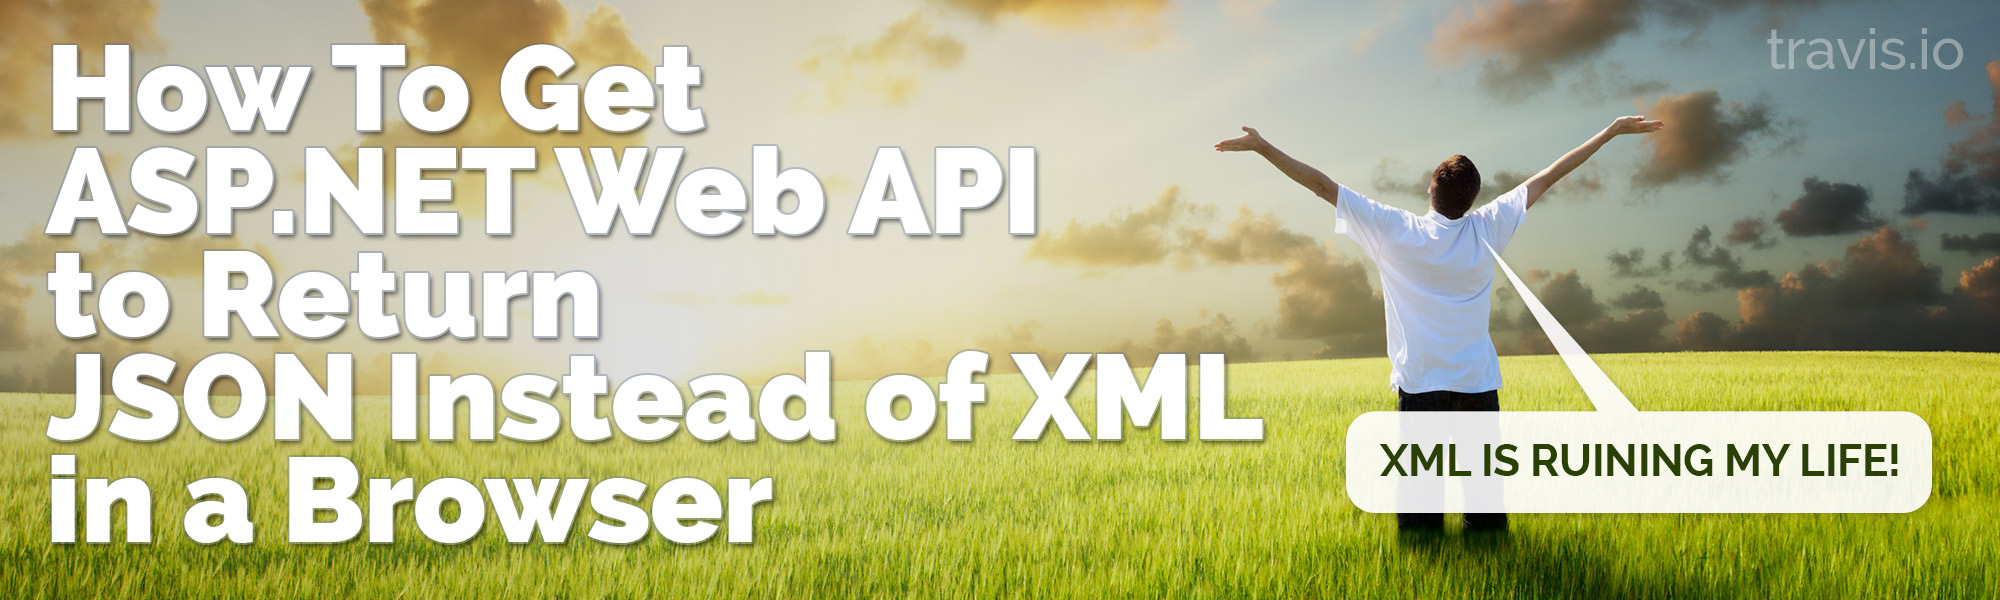 How To Get ASP.NET Web API to Return JSON Instead of XML in a Browser